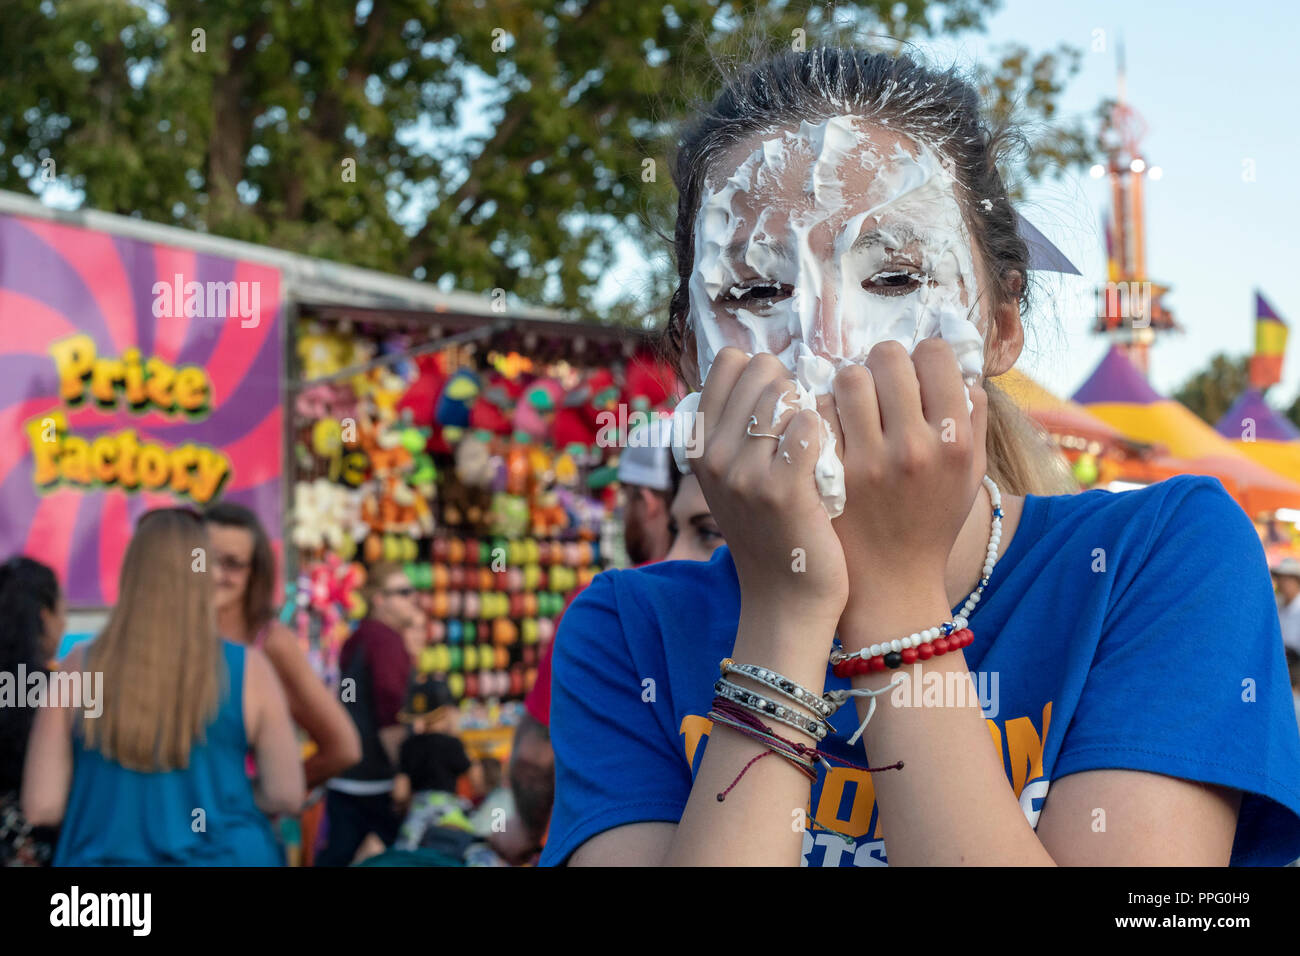 Wheat Ridge, Colorado - A high school student gets a pie in the face as a fundraiser during the annual Carnation Festival. The festival features food  - Stock Image